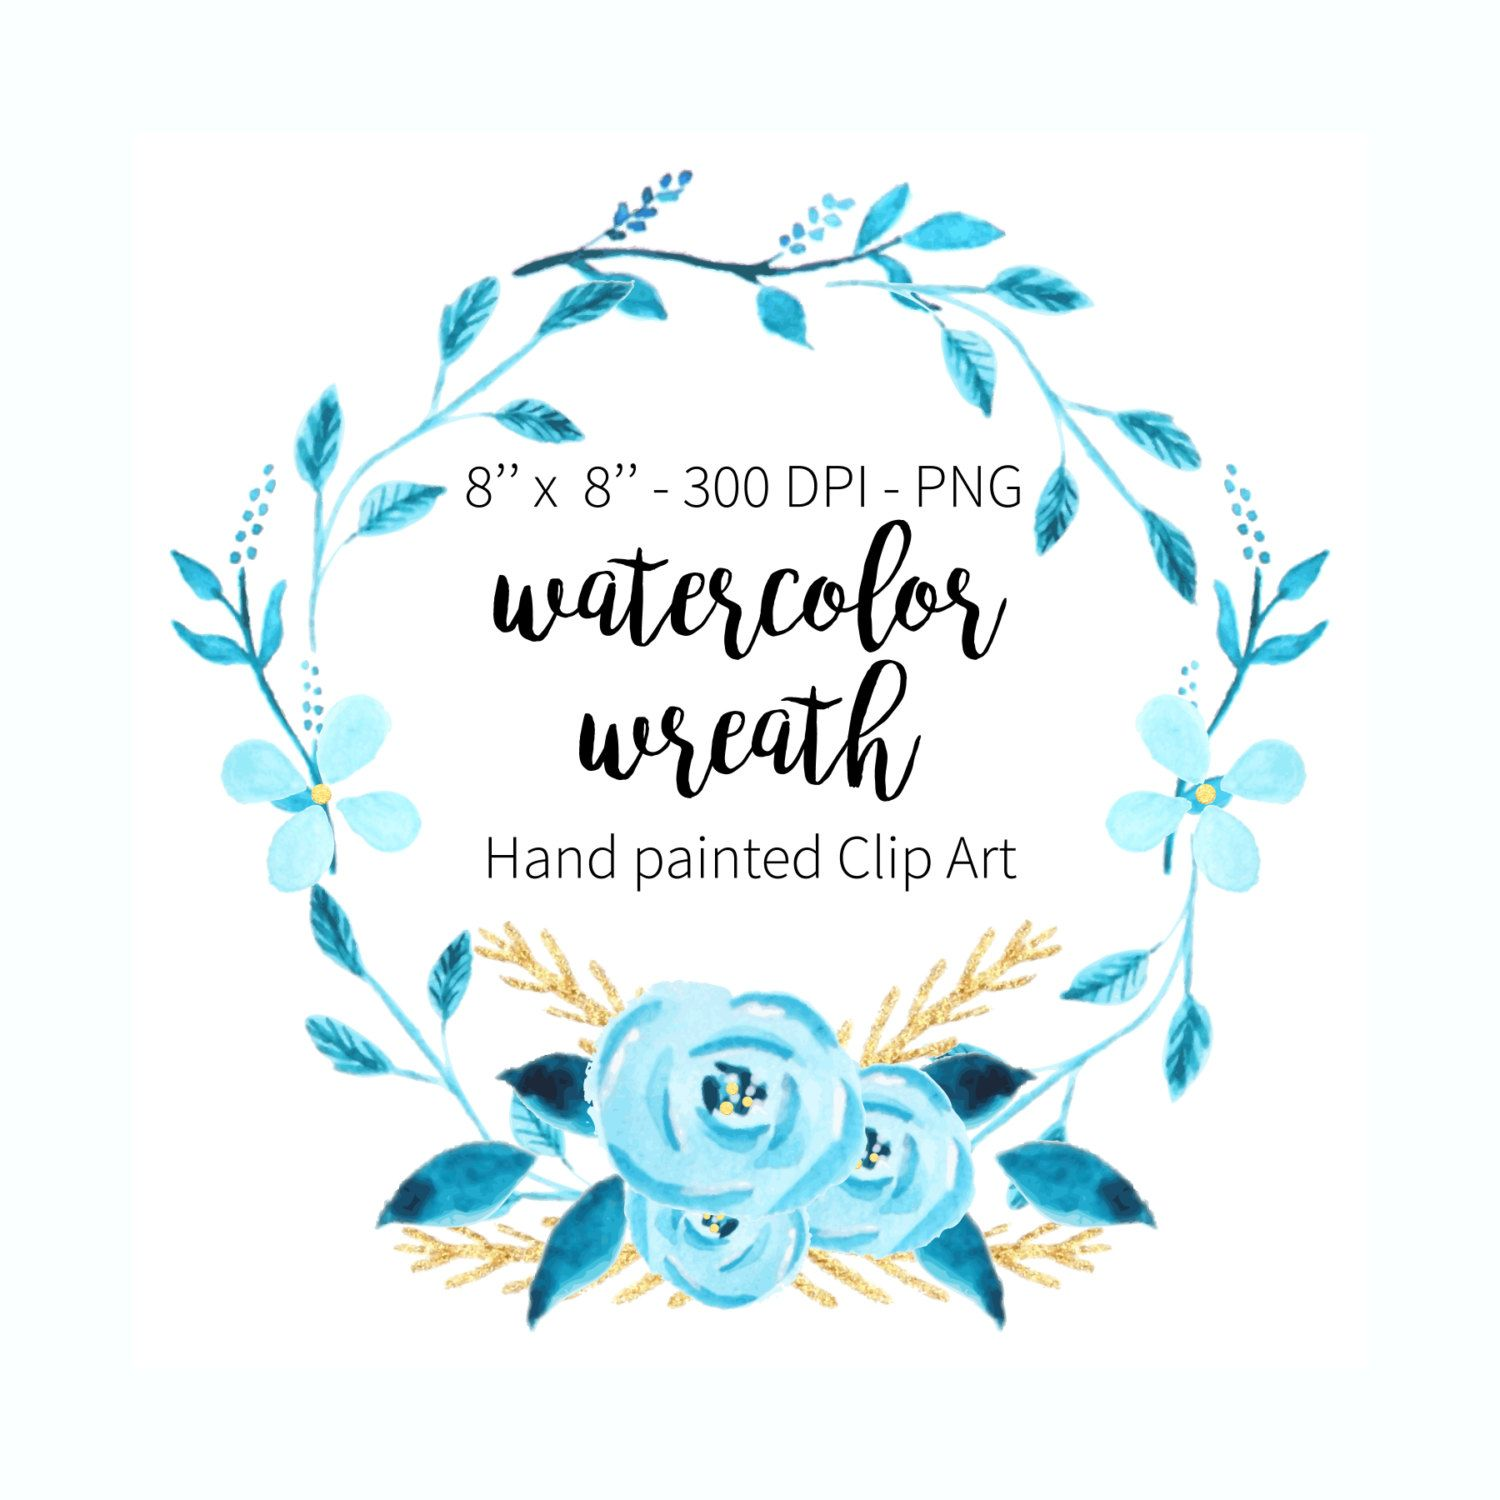 Watercolor wreath clipart wedding floral clip art blue gold floral watercolor wreath clipart wedding floral clip art blue gold floral clip art flowers izmirmasajfo Gallery